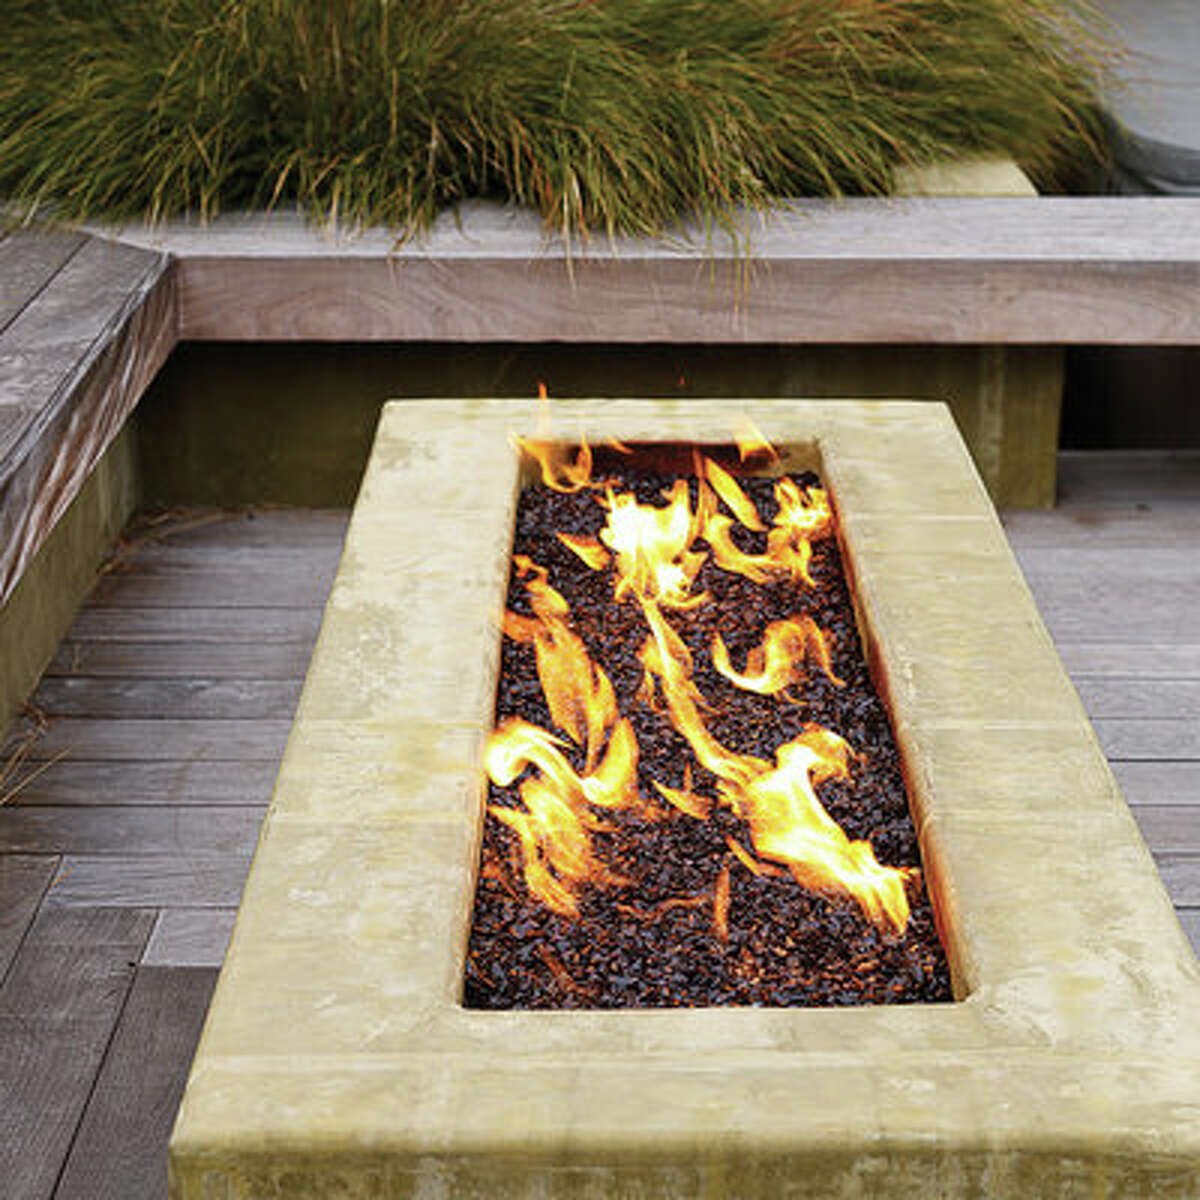 Warming firepit A raised concrete trough filled with recycled glass keeps the dining deck warm on cool nights. When not in use, the gas firepit can be covered with a slab of ipe wood, which converts it into a coffee table.